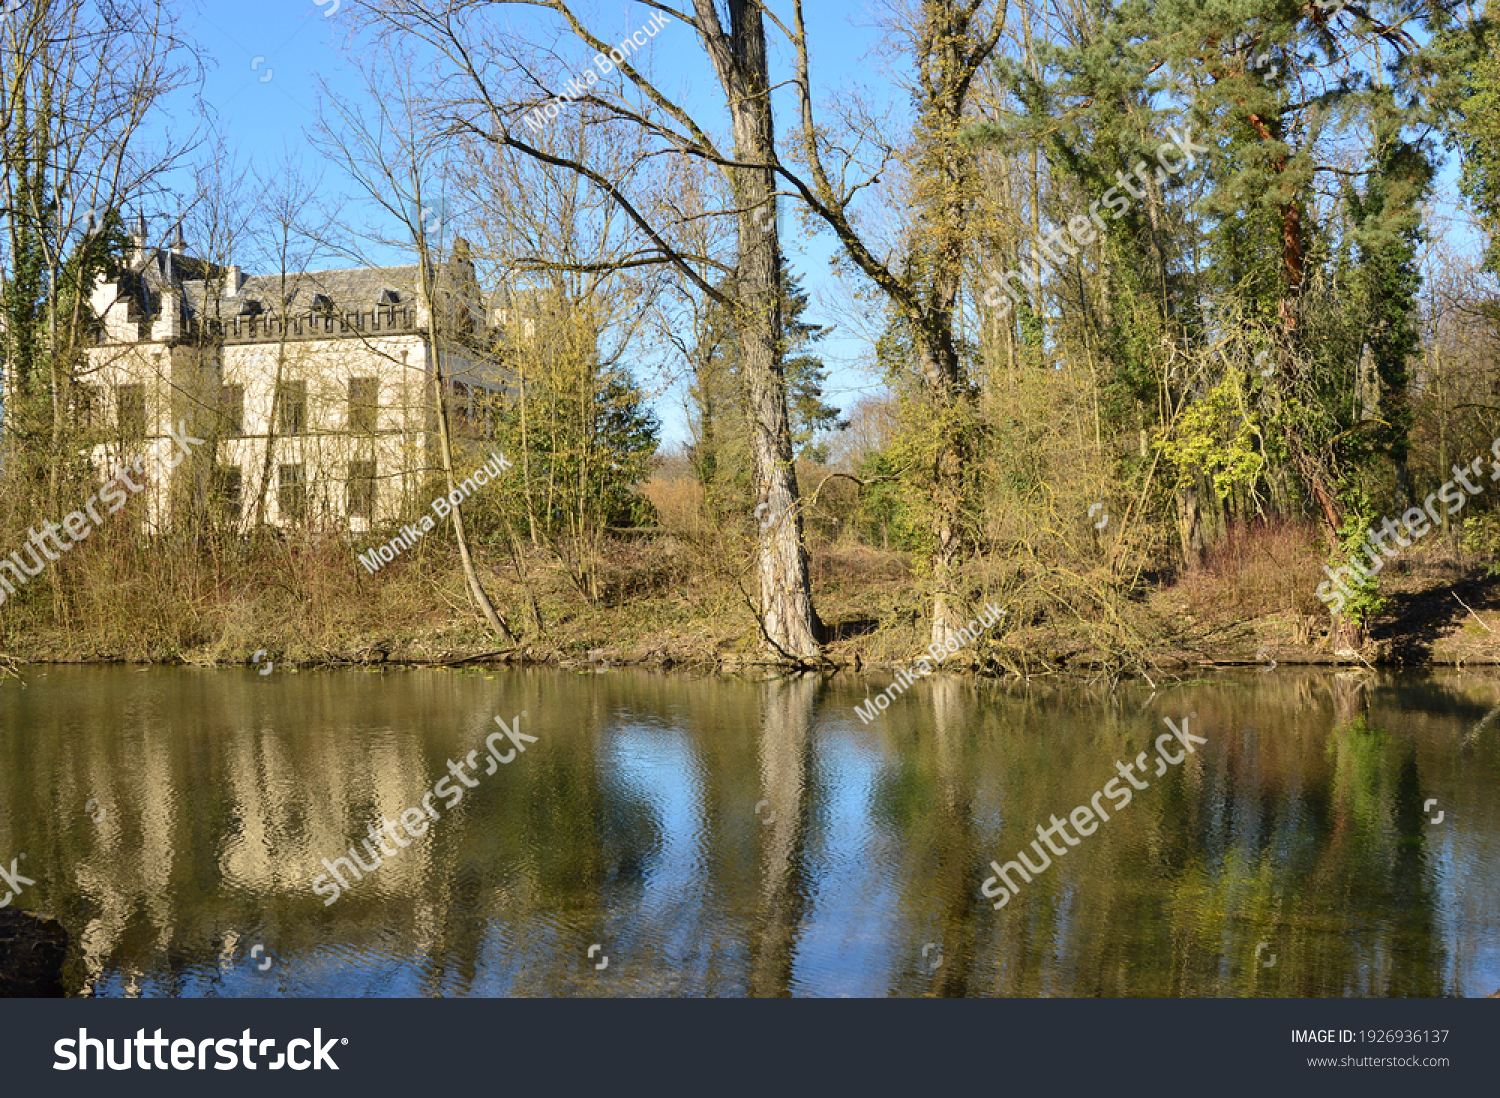 stock-photo-a-park-with-pond-and-trees-i